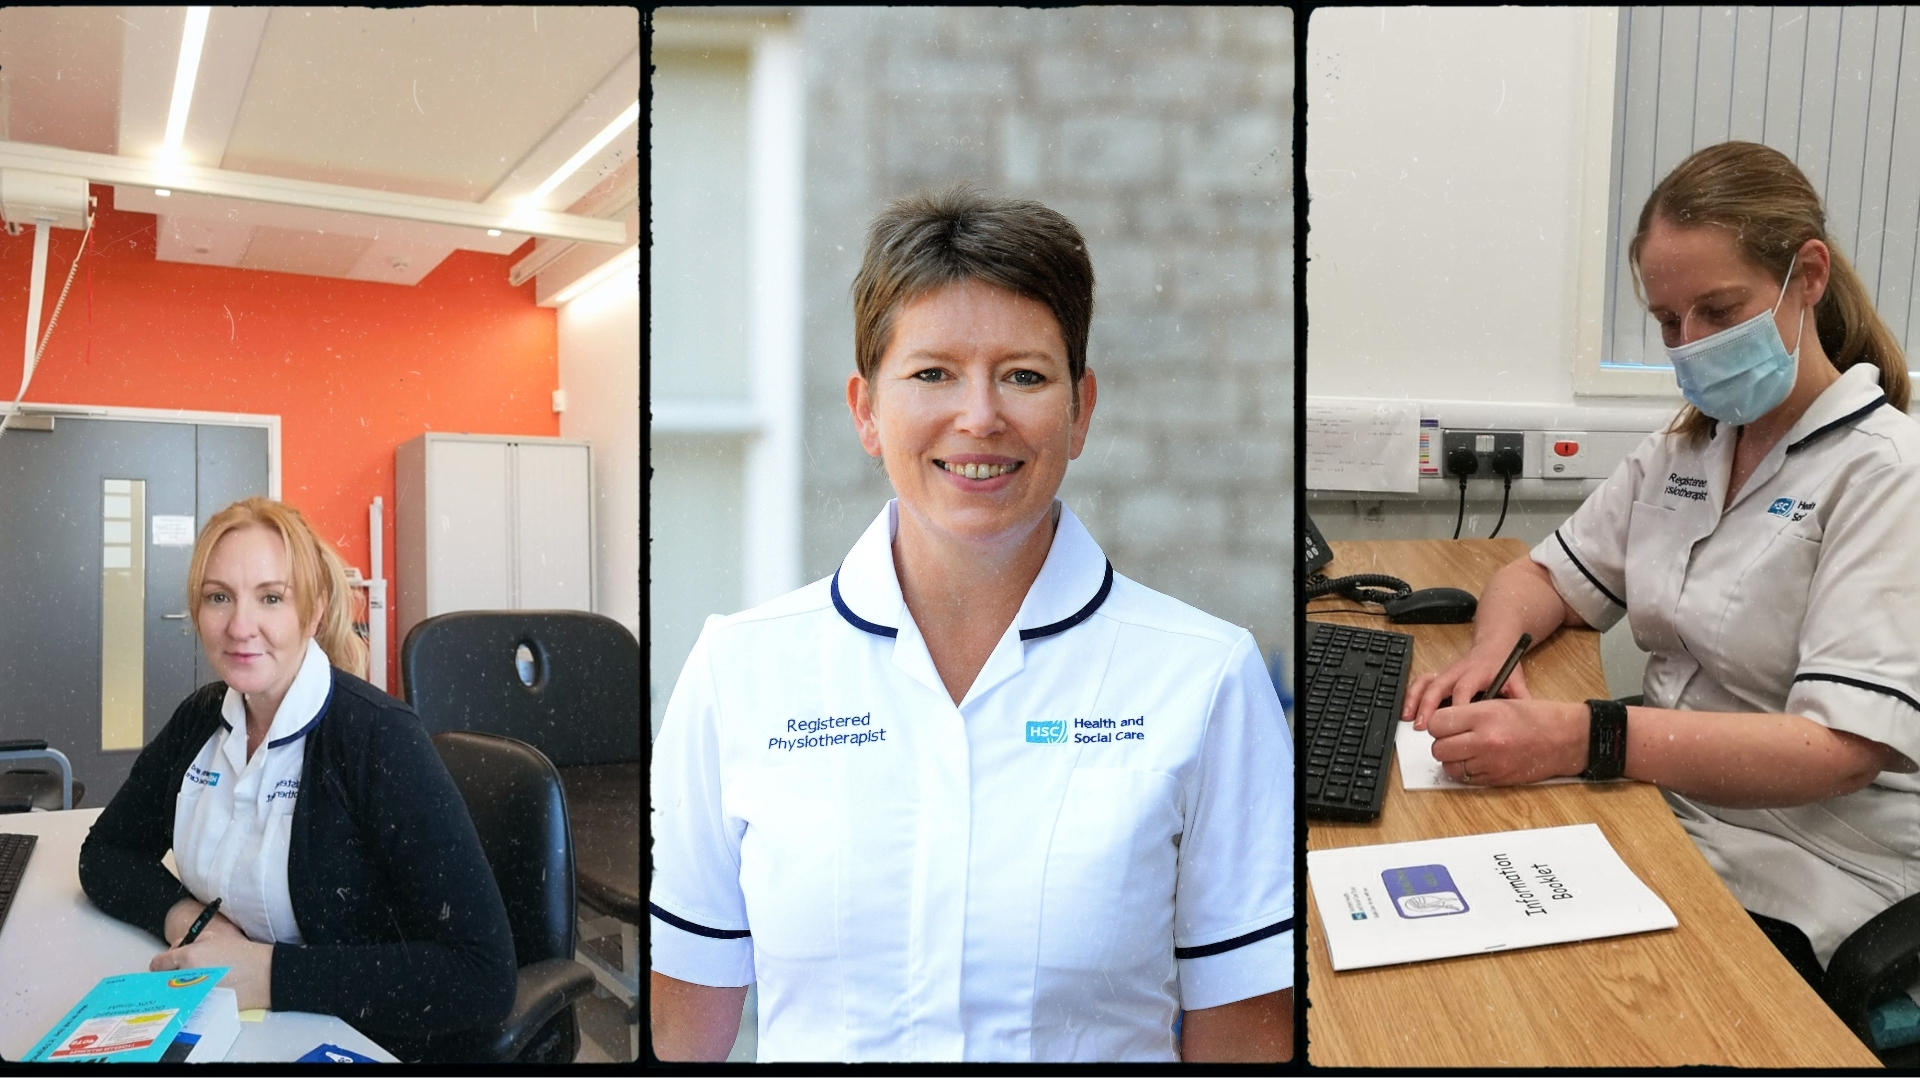 New Physiotherapy scheme to reduce waiting times - Southern Trust - Daisy Hill Hospital Newry - Newry online